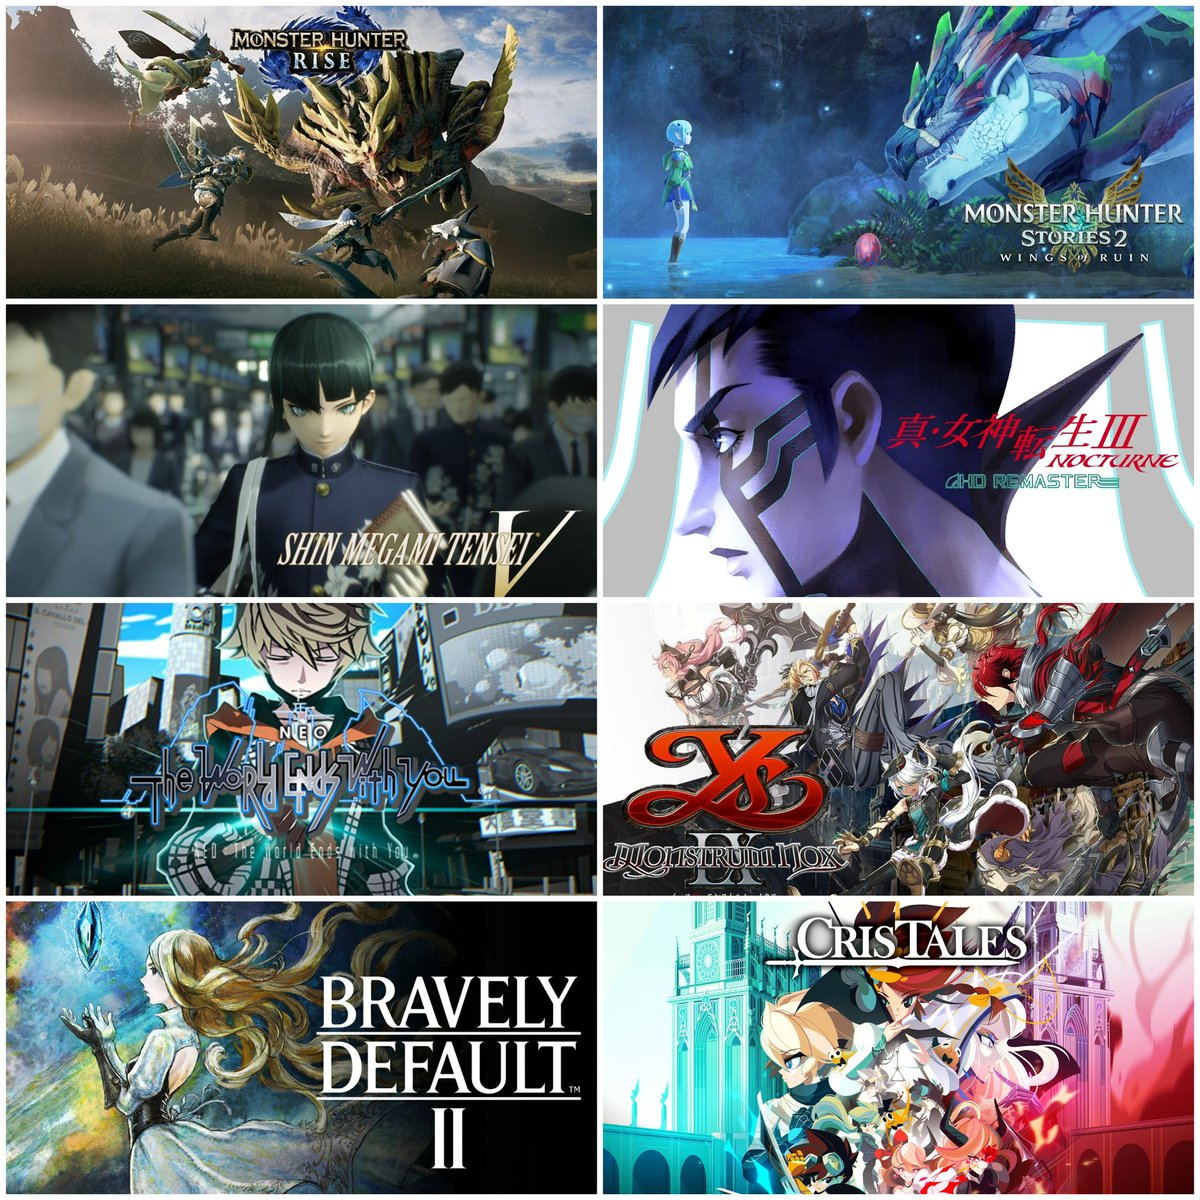 I've realized a pattern of the releases for 2021 for Nintendo Switch.. most of them are RPG's! Looking so much forward for the upcoming games next year! #NintendoSwitch #RPG #MonsterHunter #ShinMegamiTensei #Ys9 #NeoTheWorldEndswithYou #bravelydefault2 #CrisTales